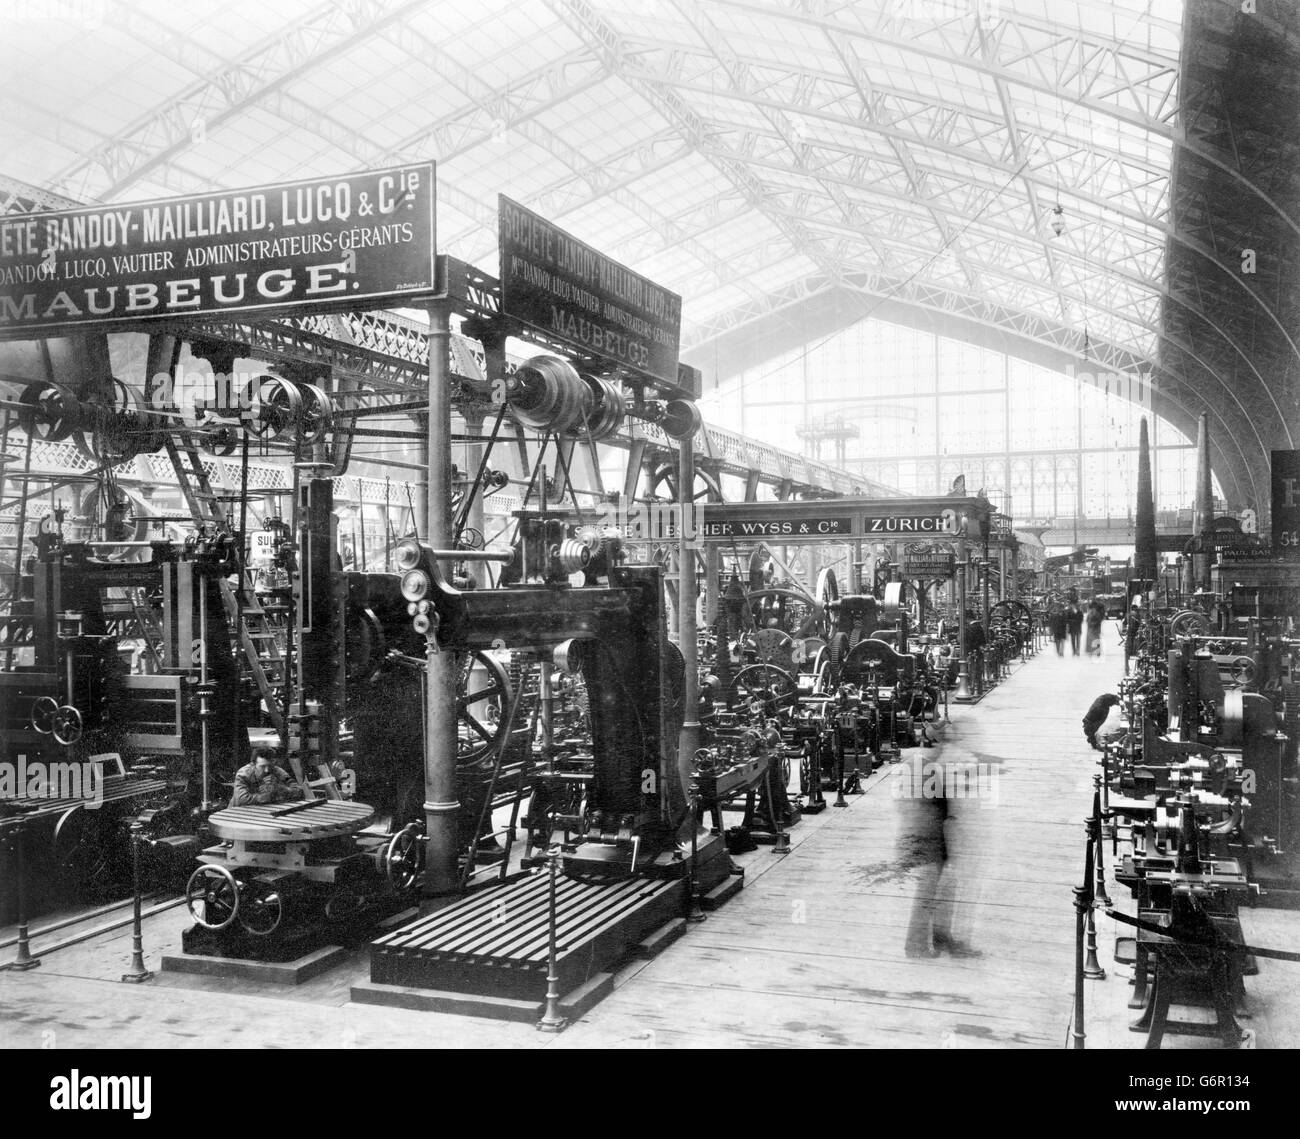 Paris Exposition 1889. Interior view of the Gallery of Machines, Exposition Universelle Internationale de 1889, - Stock Image